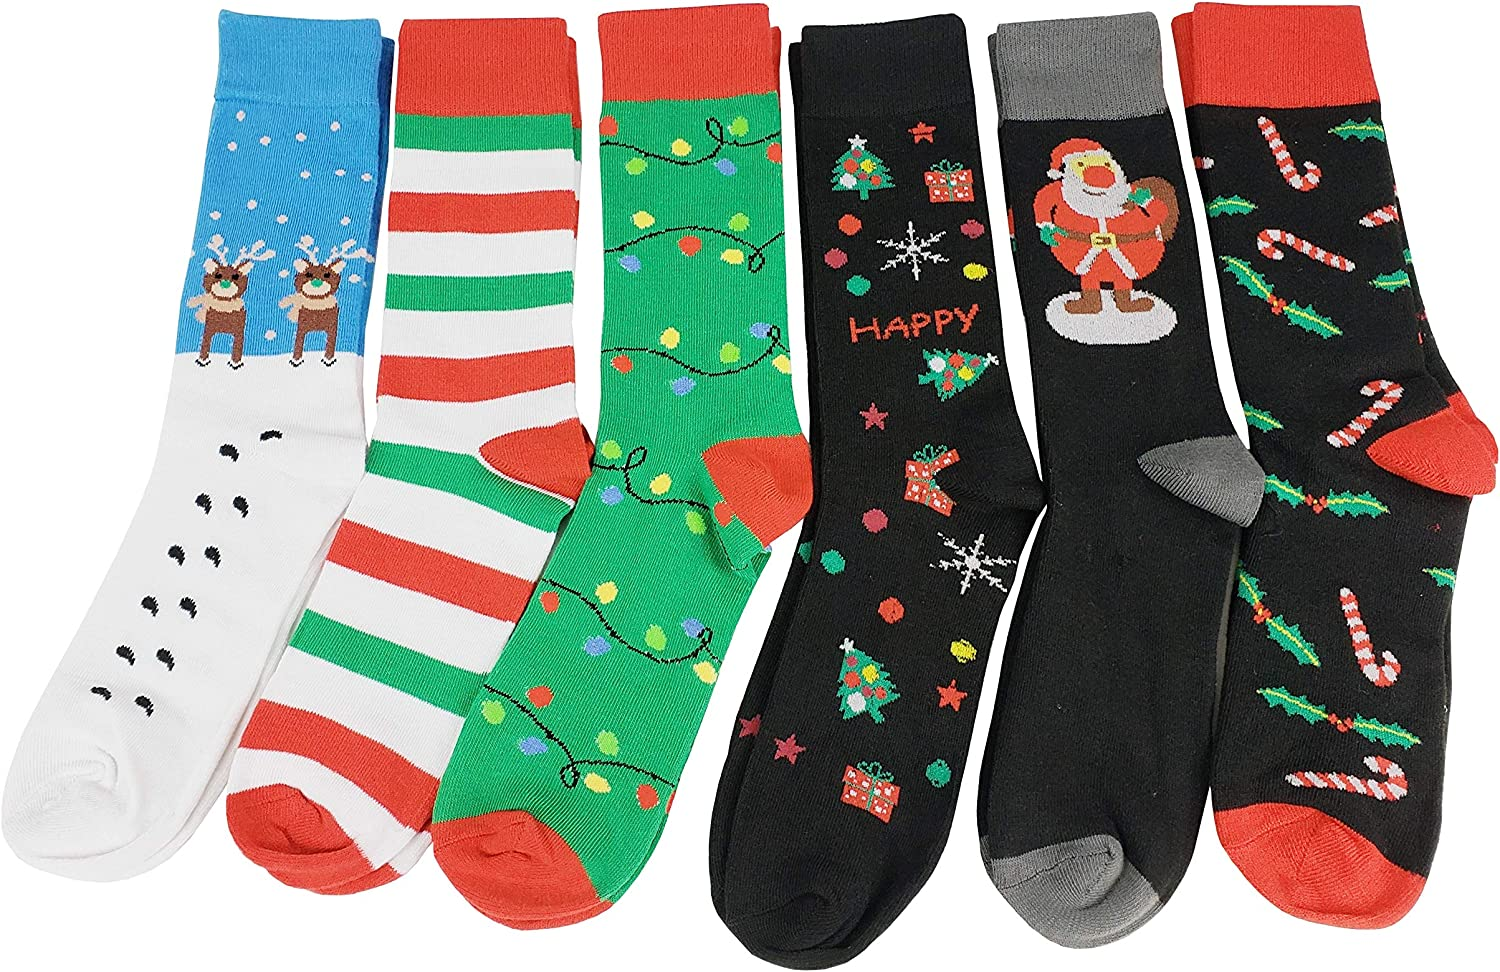 6 Pairs Men Colorful Fashion Design Dress socks 10-13 12 Pairs